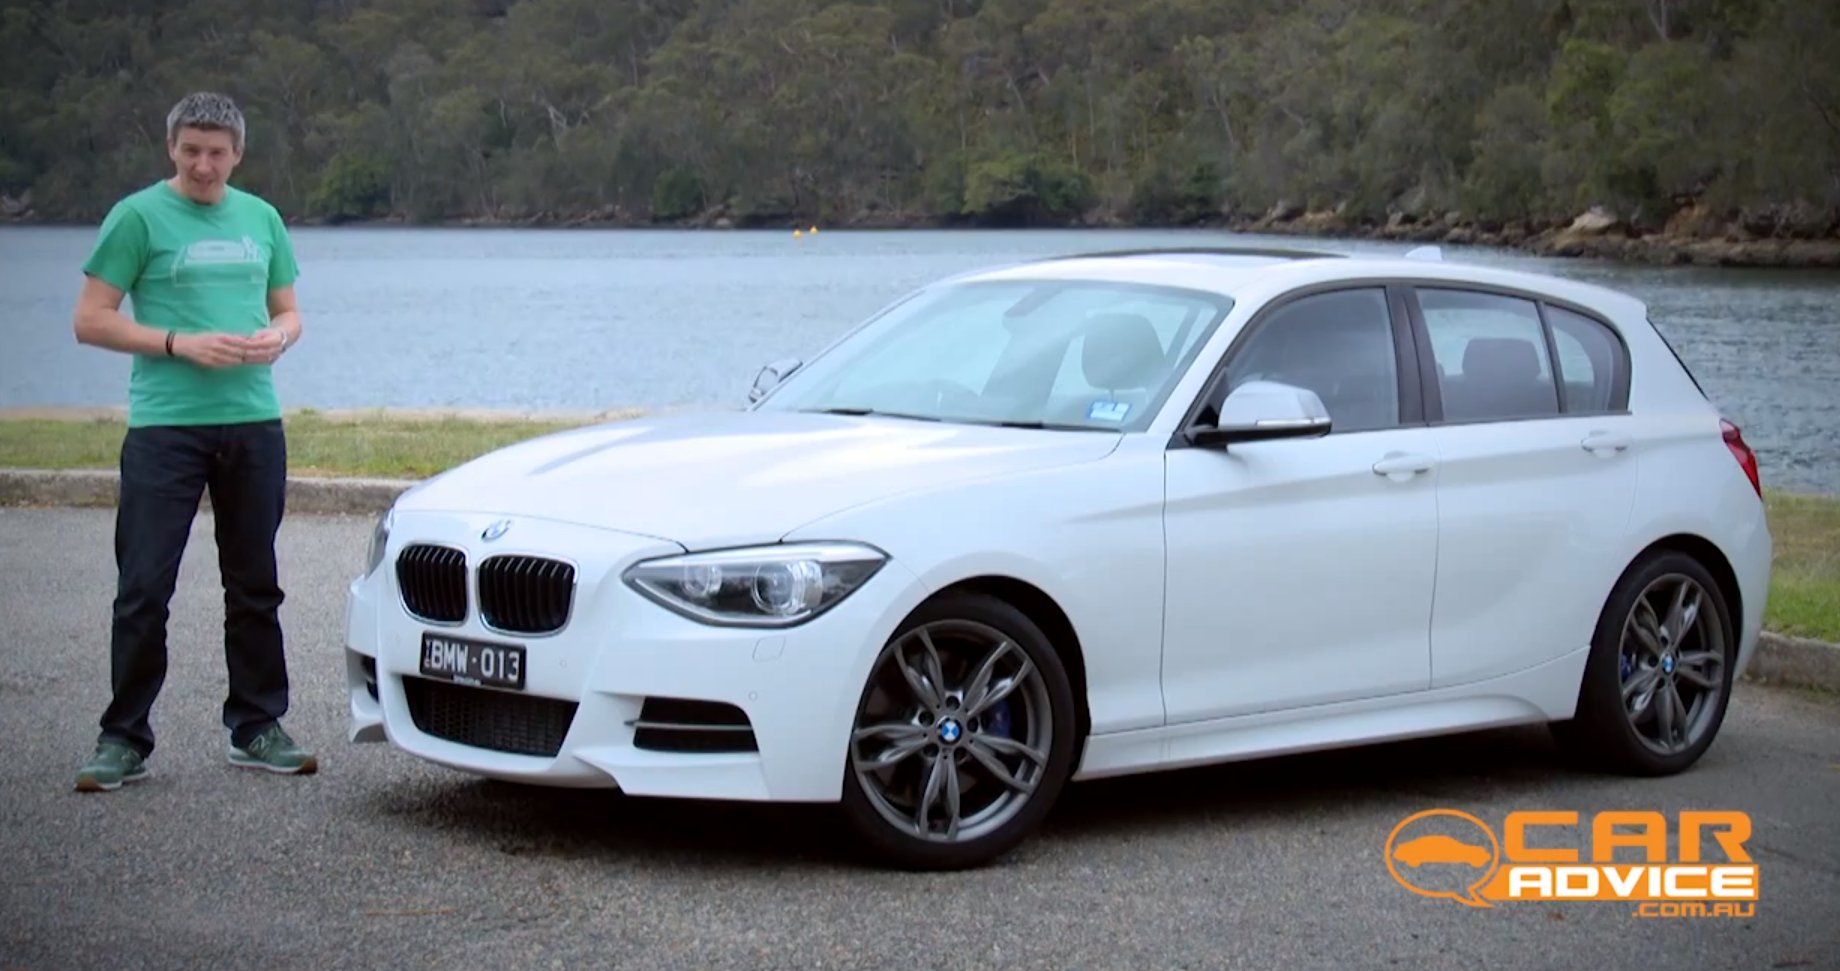 Bmw f20 m135i review by car advice autoevolution